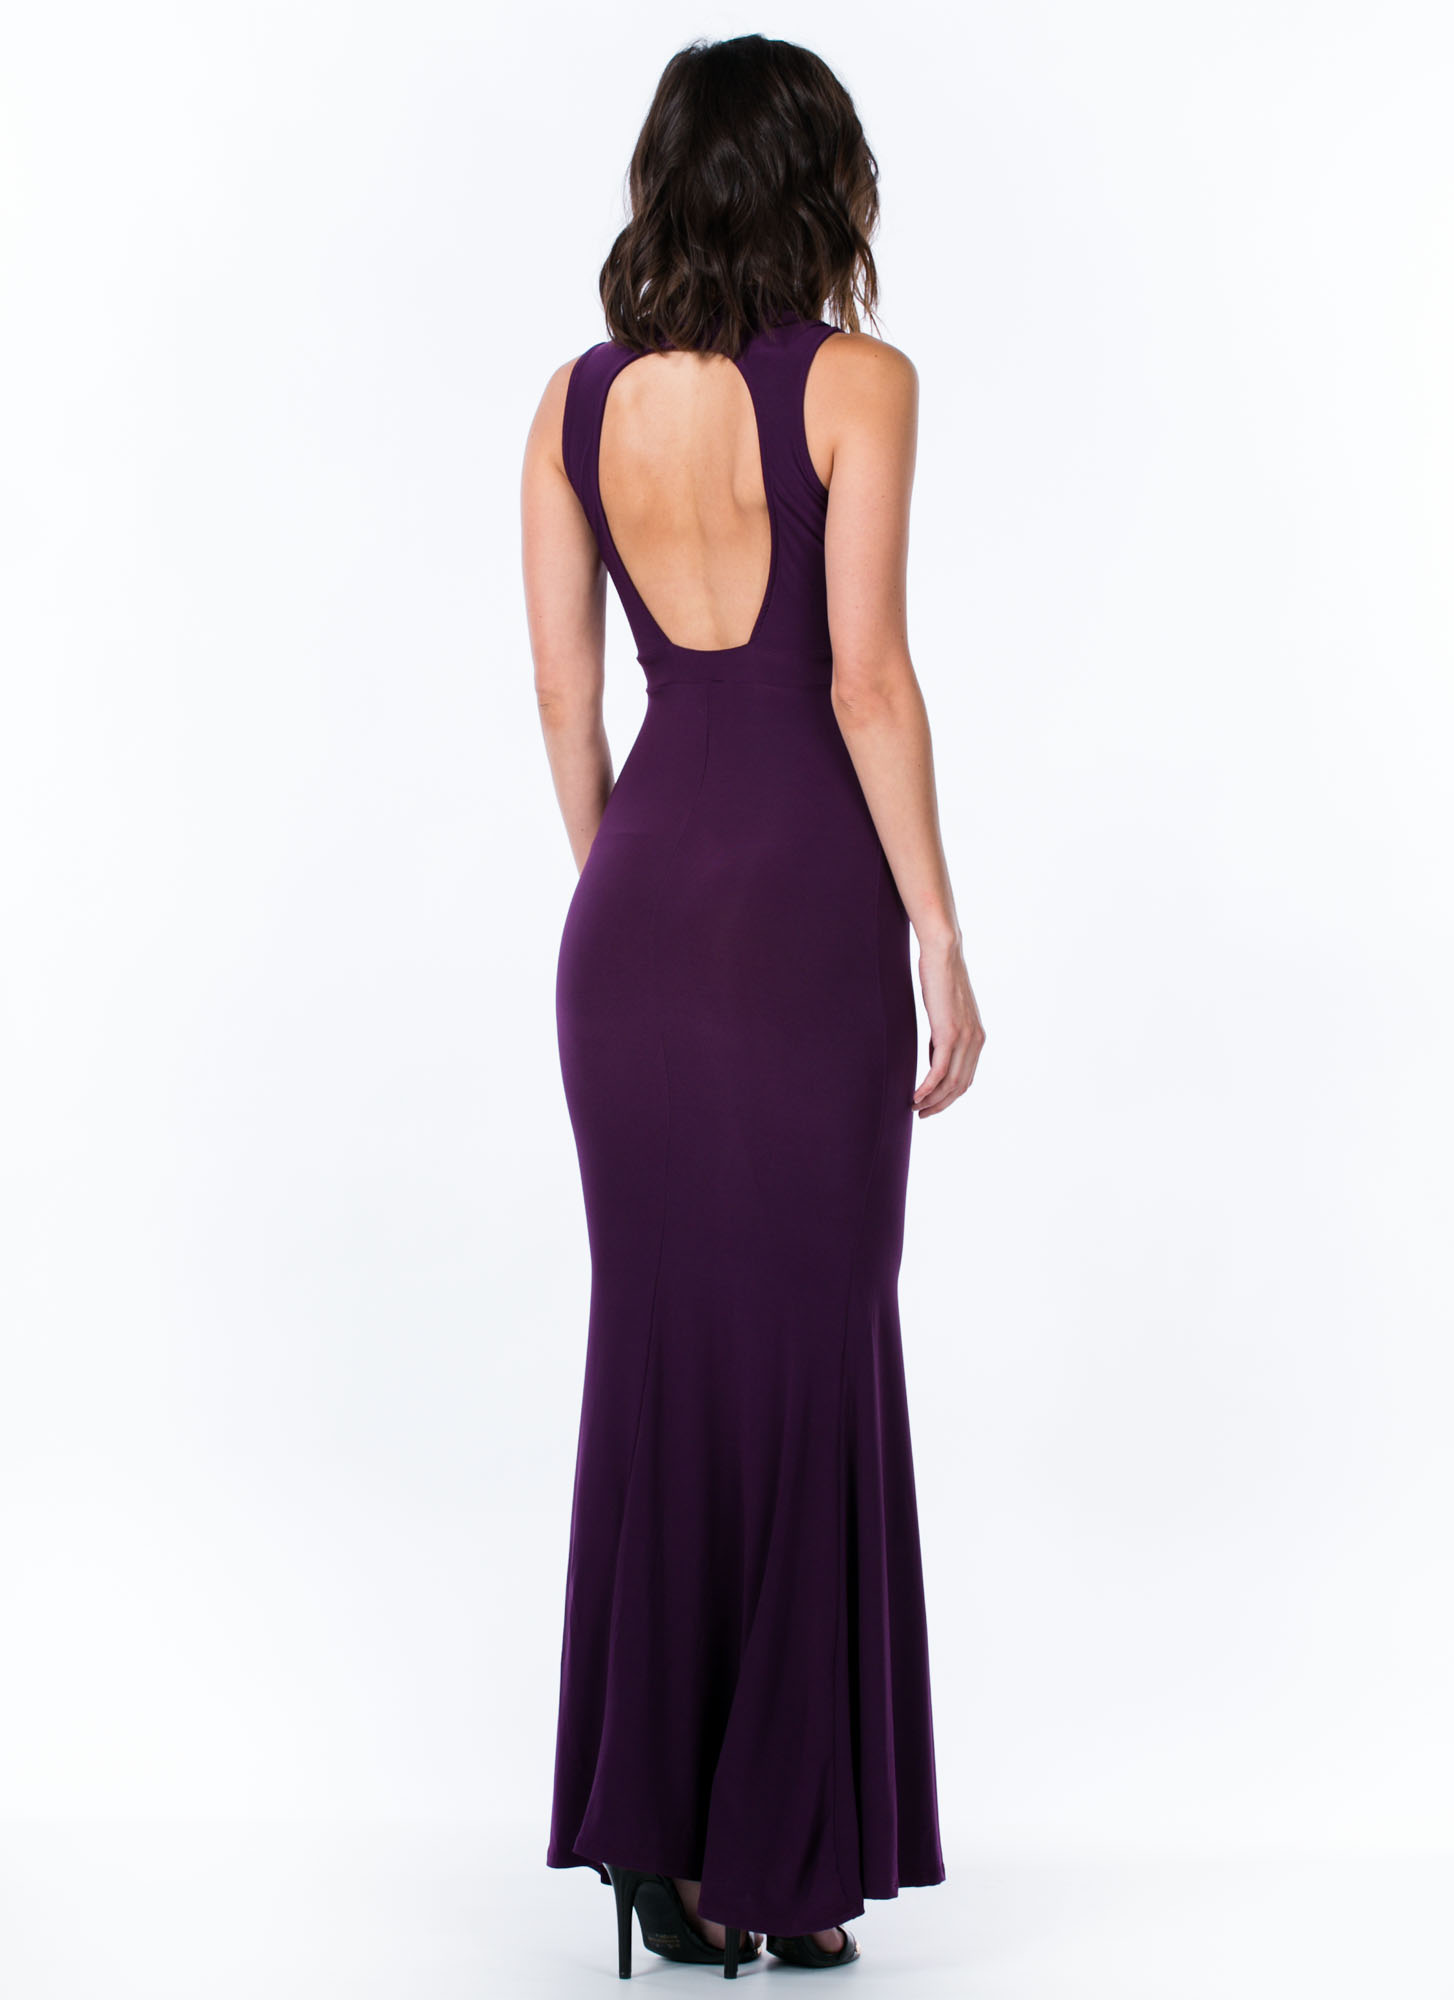 Mermaid To Order Cut-Out Maxi Dress PLUM (Final Sale)